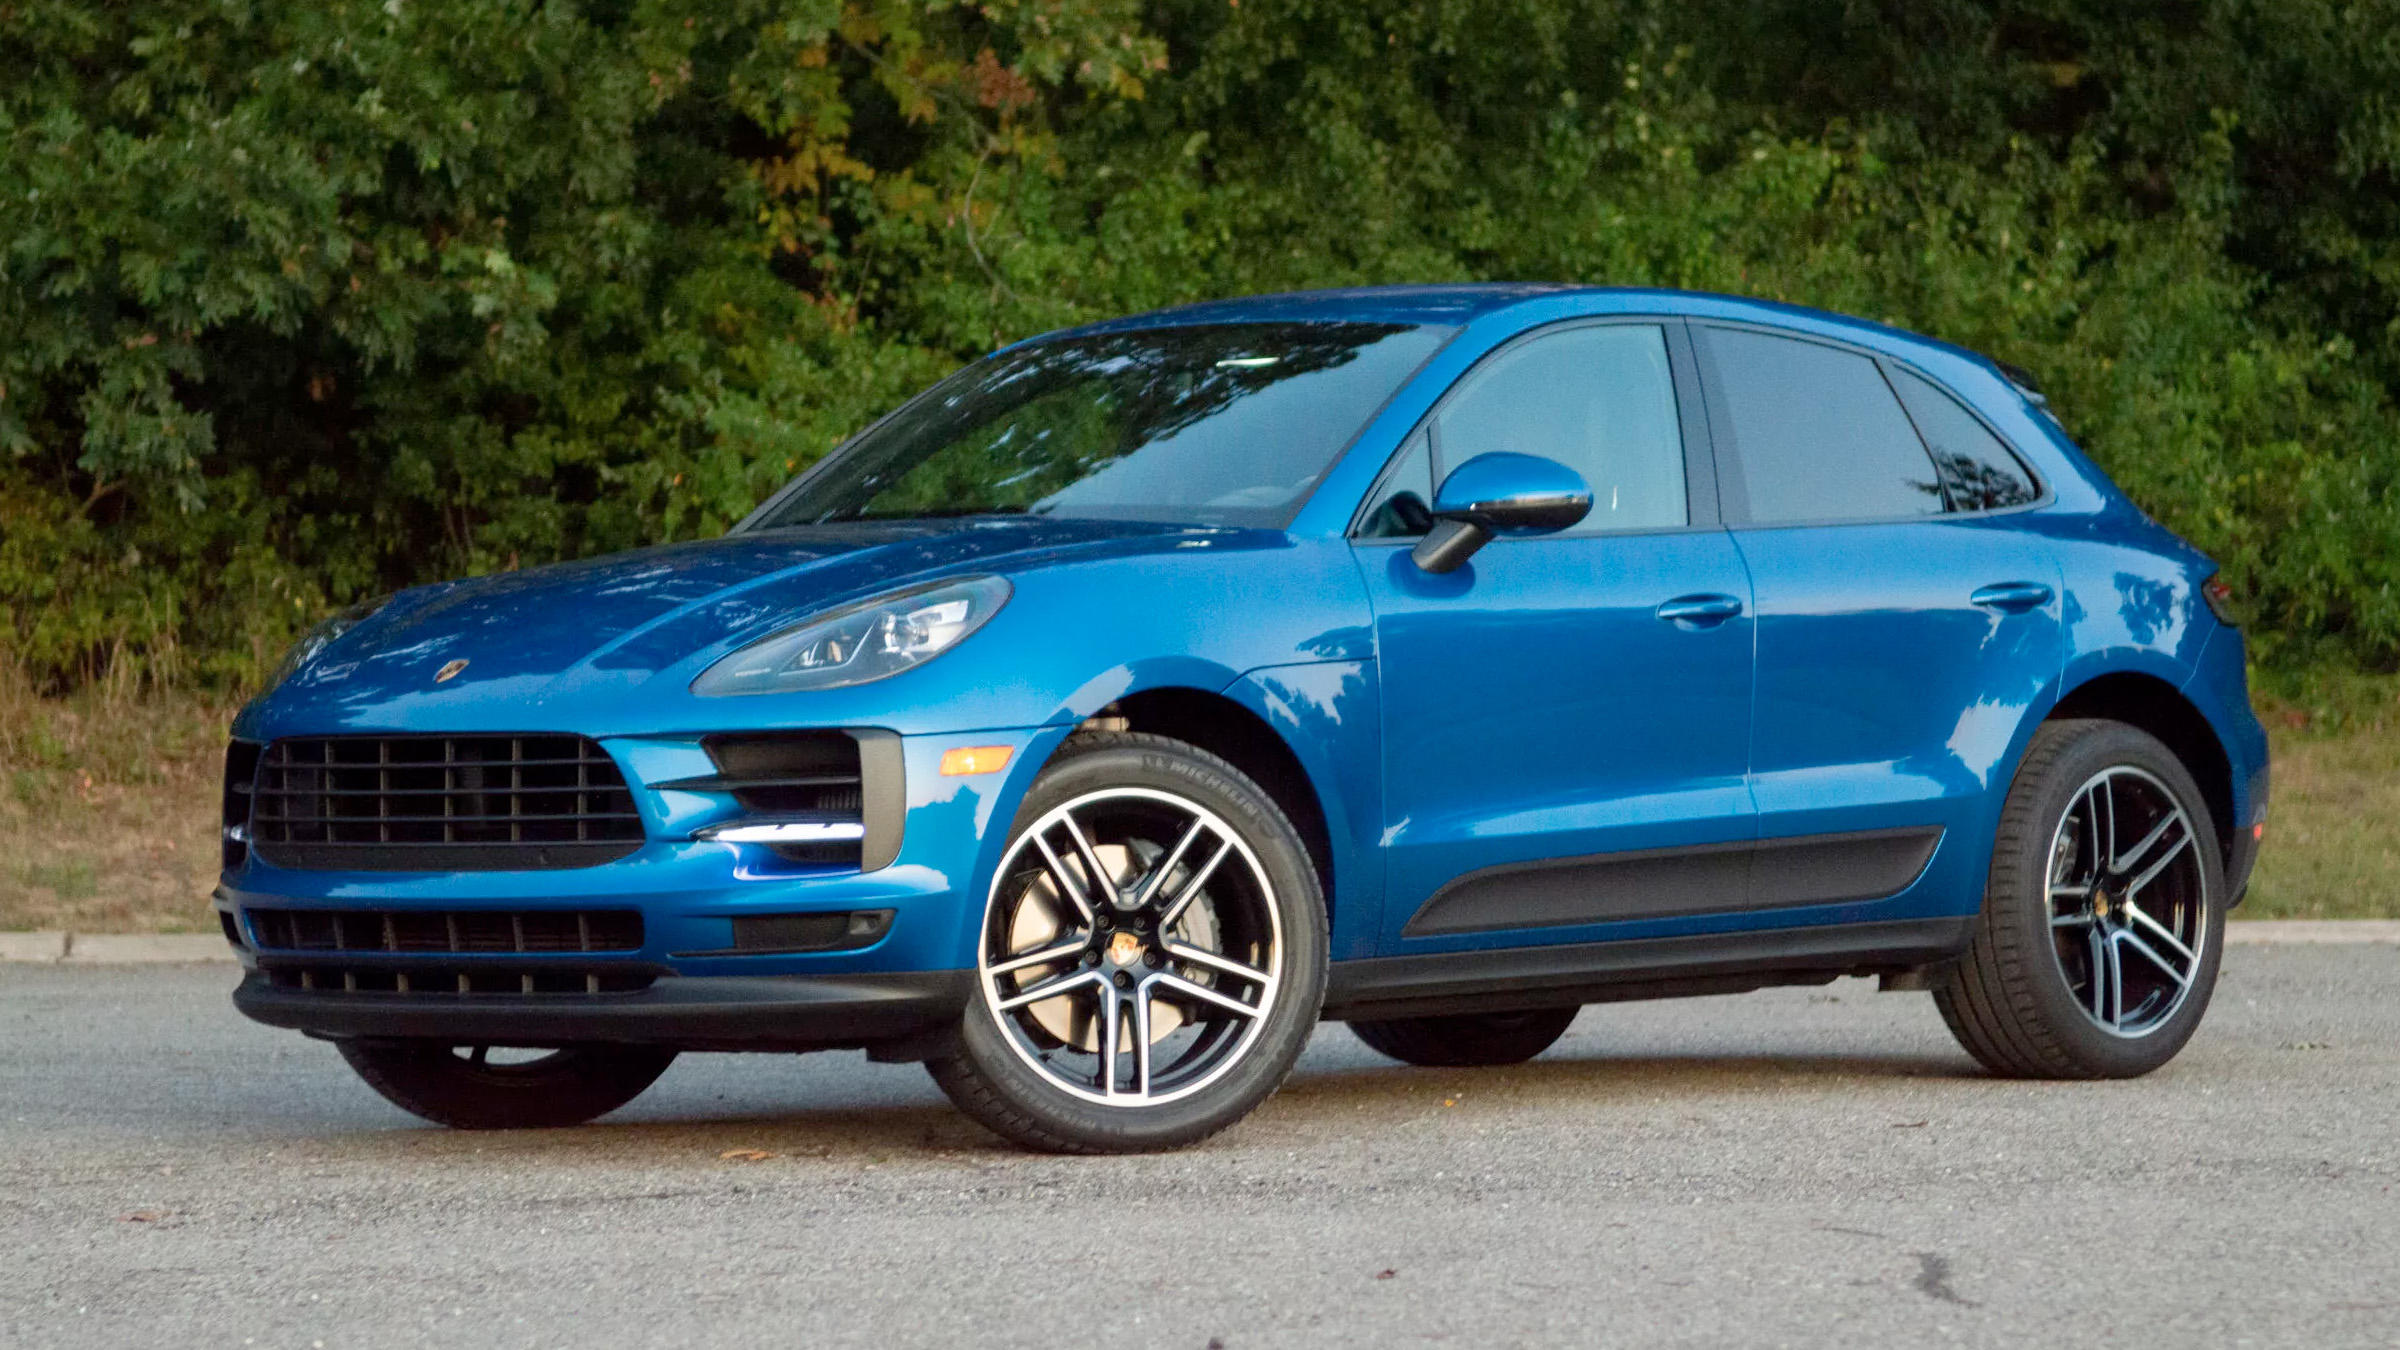 Video: 2019 Porsche Macan S is sufficiently sporty